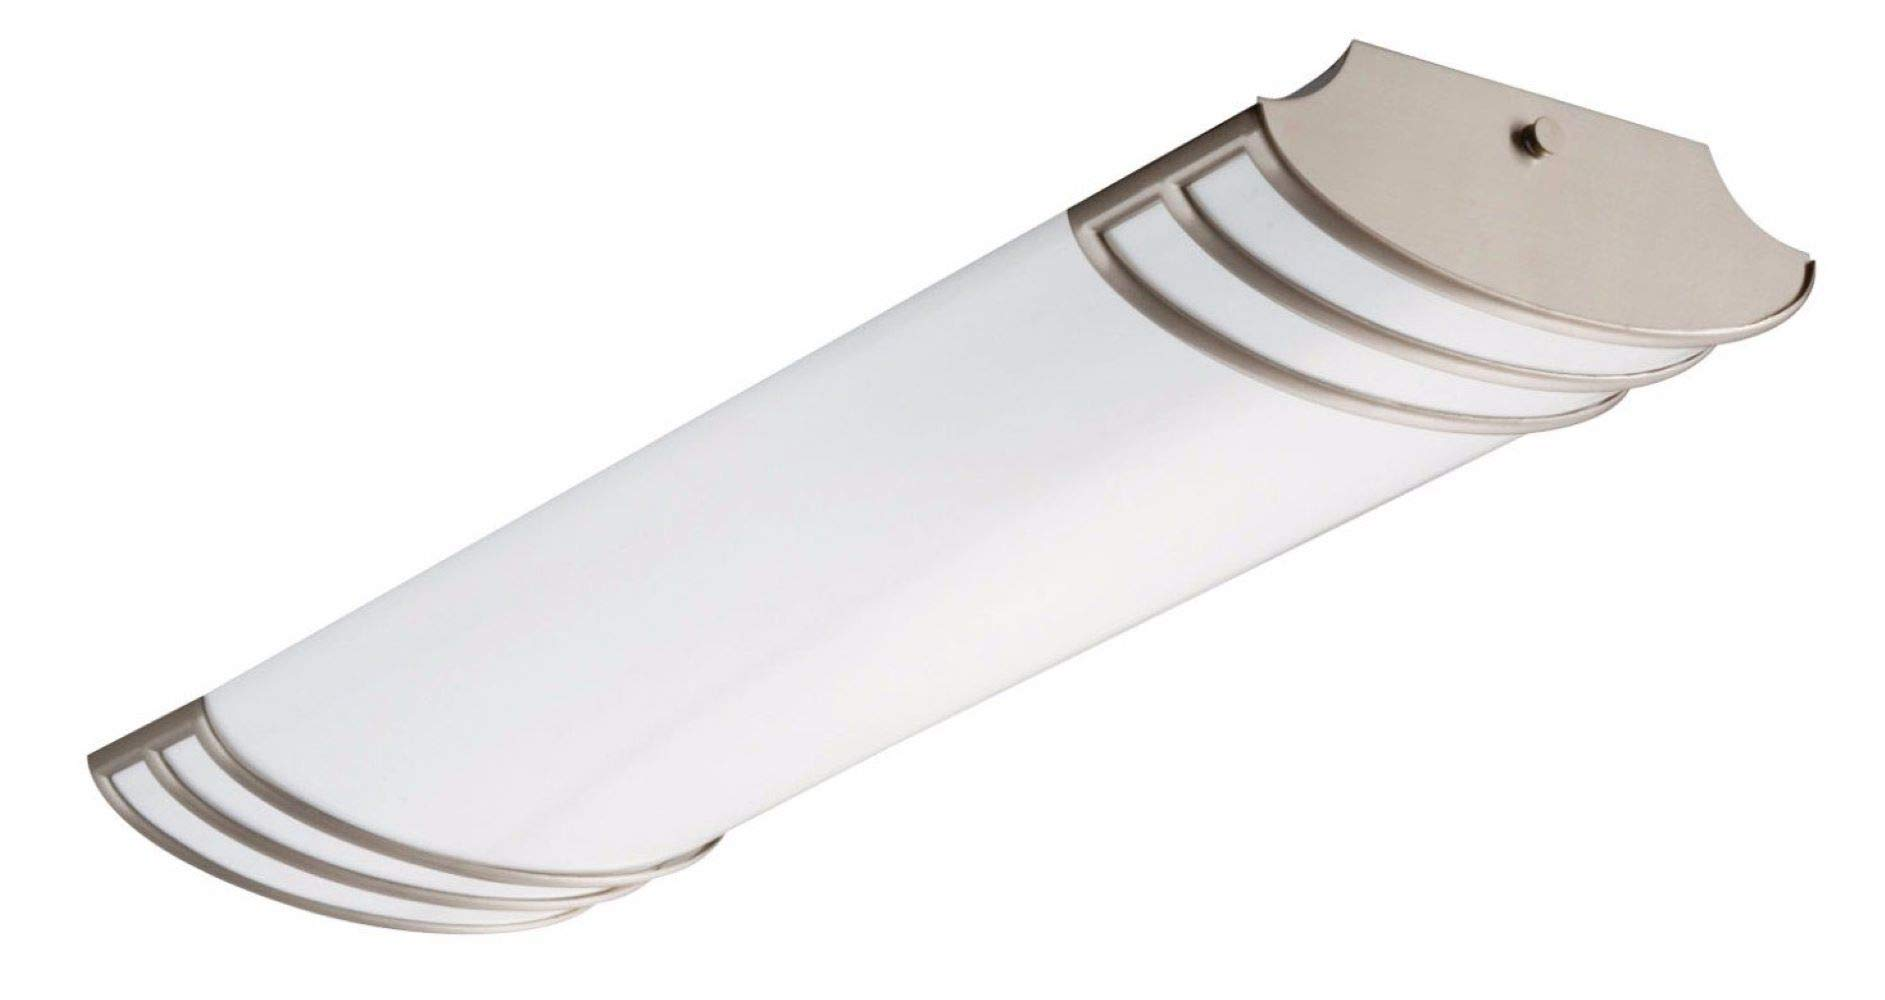 Lithonia Lighting FMLFUTL 24-Inch 840 BN 2-Foot Futra Linear Design for Kitchen  Office  Closet  2180 Lumens, 120 Volts, 25 Watts, Wet Listed, Brushed Nickel